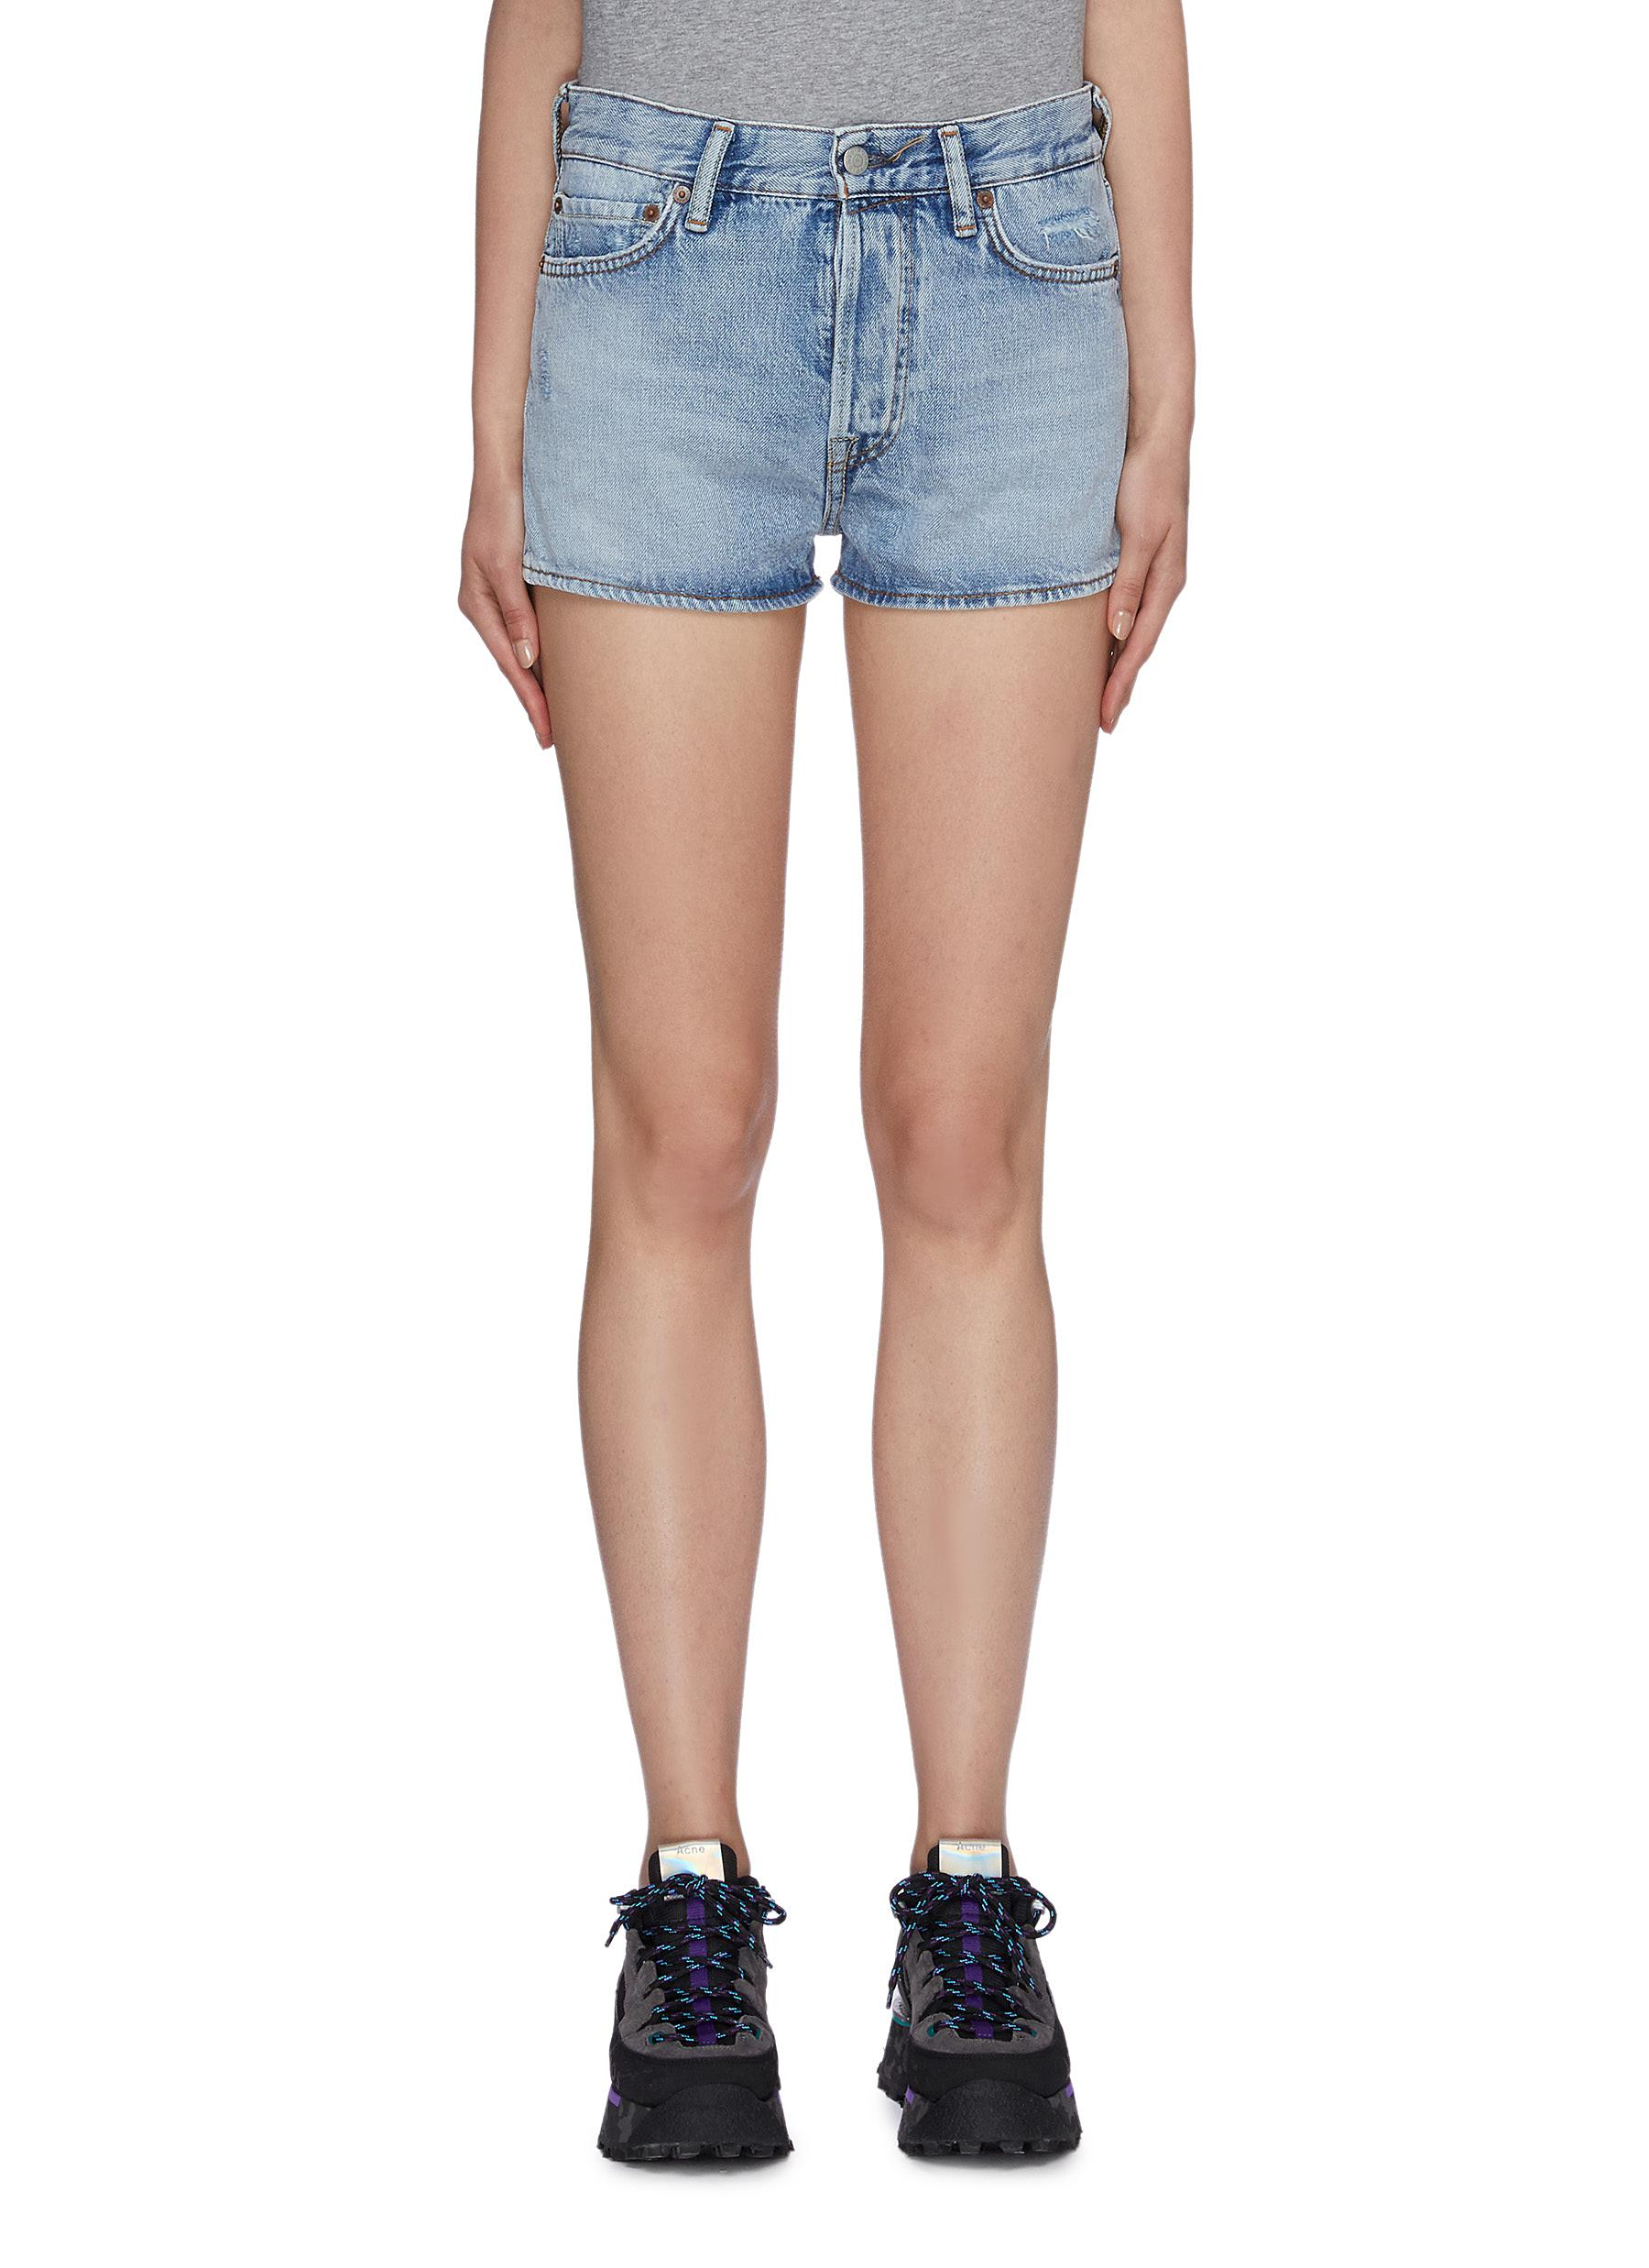 Magee washed denim shorts by Acne Studios